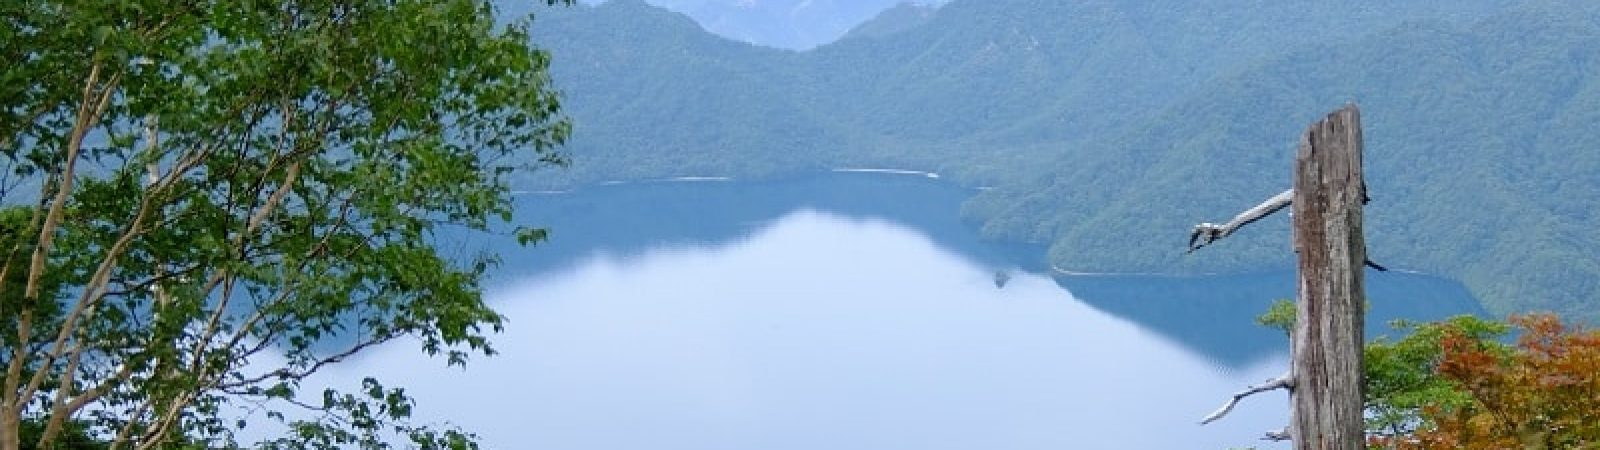 3-day guided hike in Nikko National Park